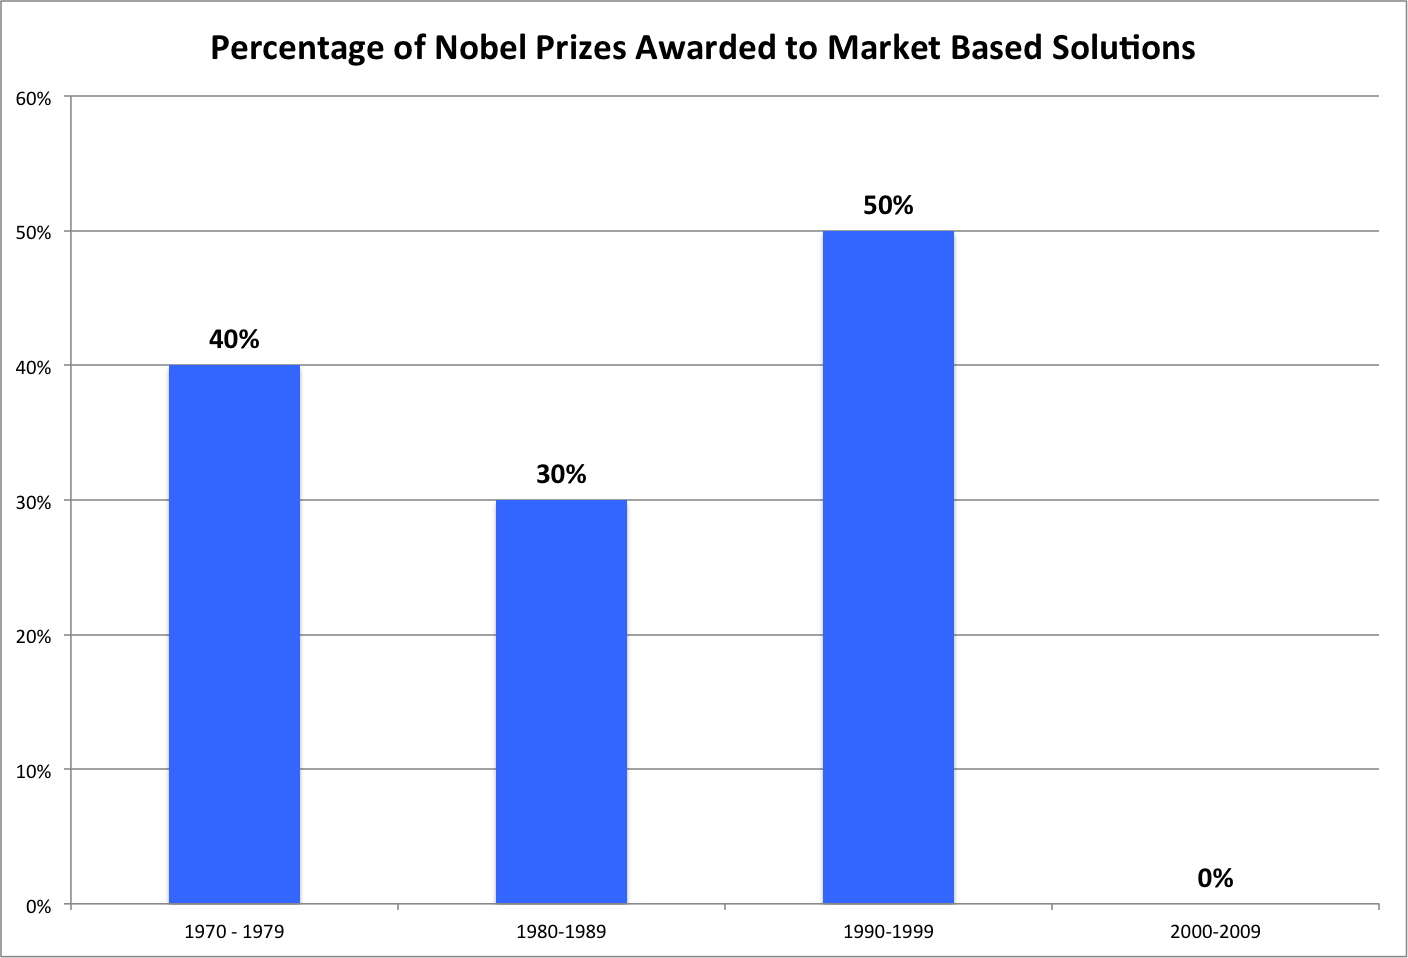 Percentage of Nobel Prize Winners